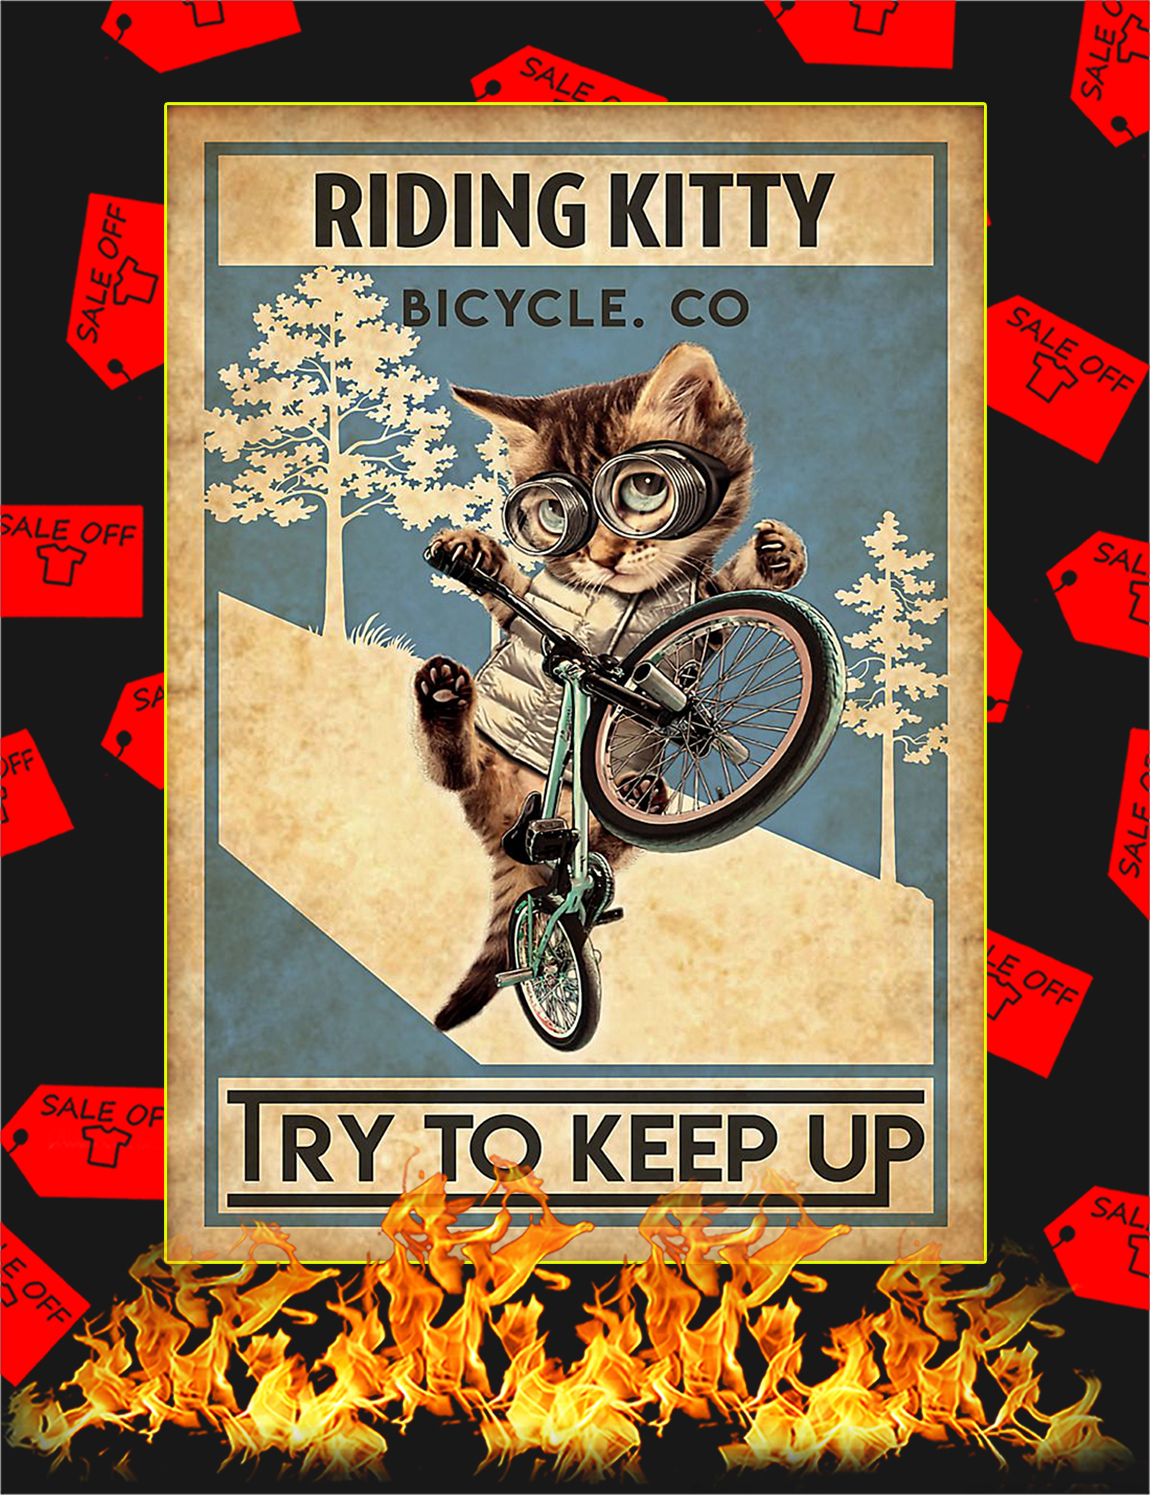 Riding kitty bicycle co try to keep up poster - A2